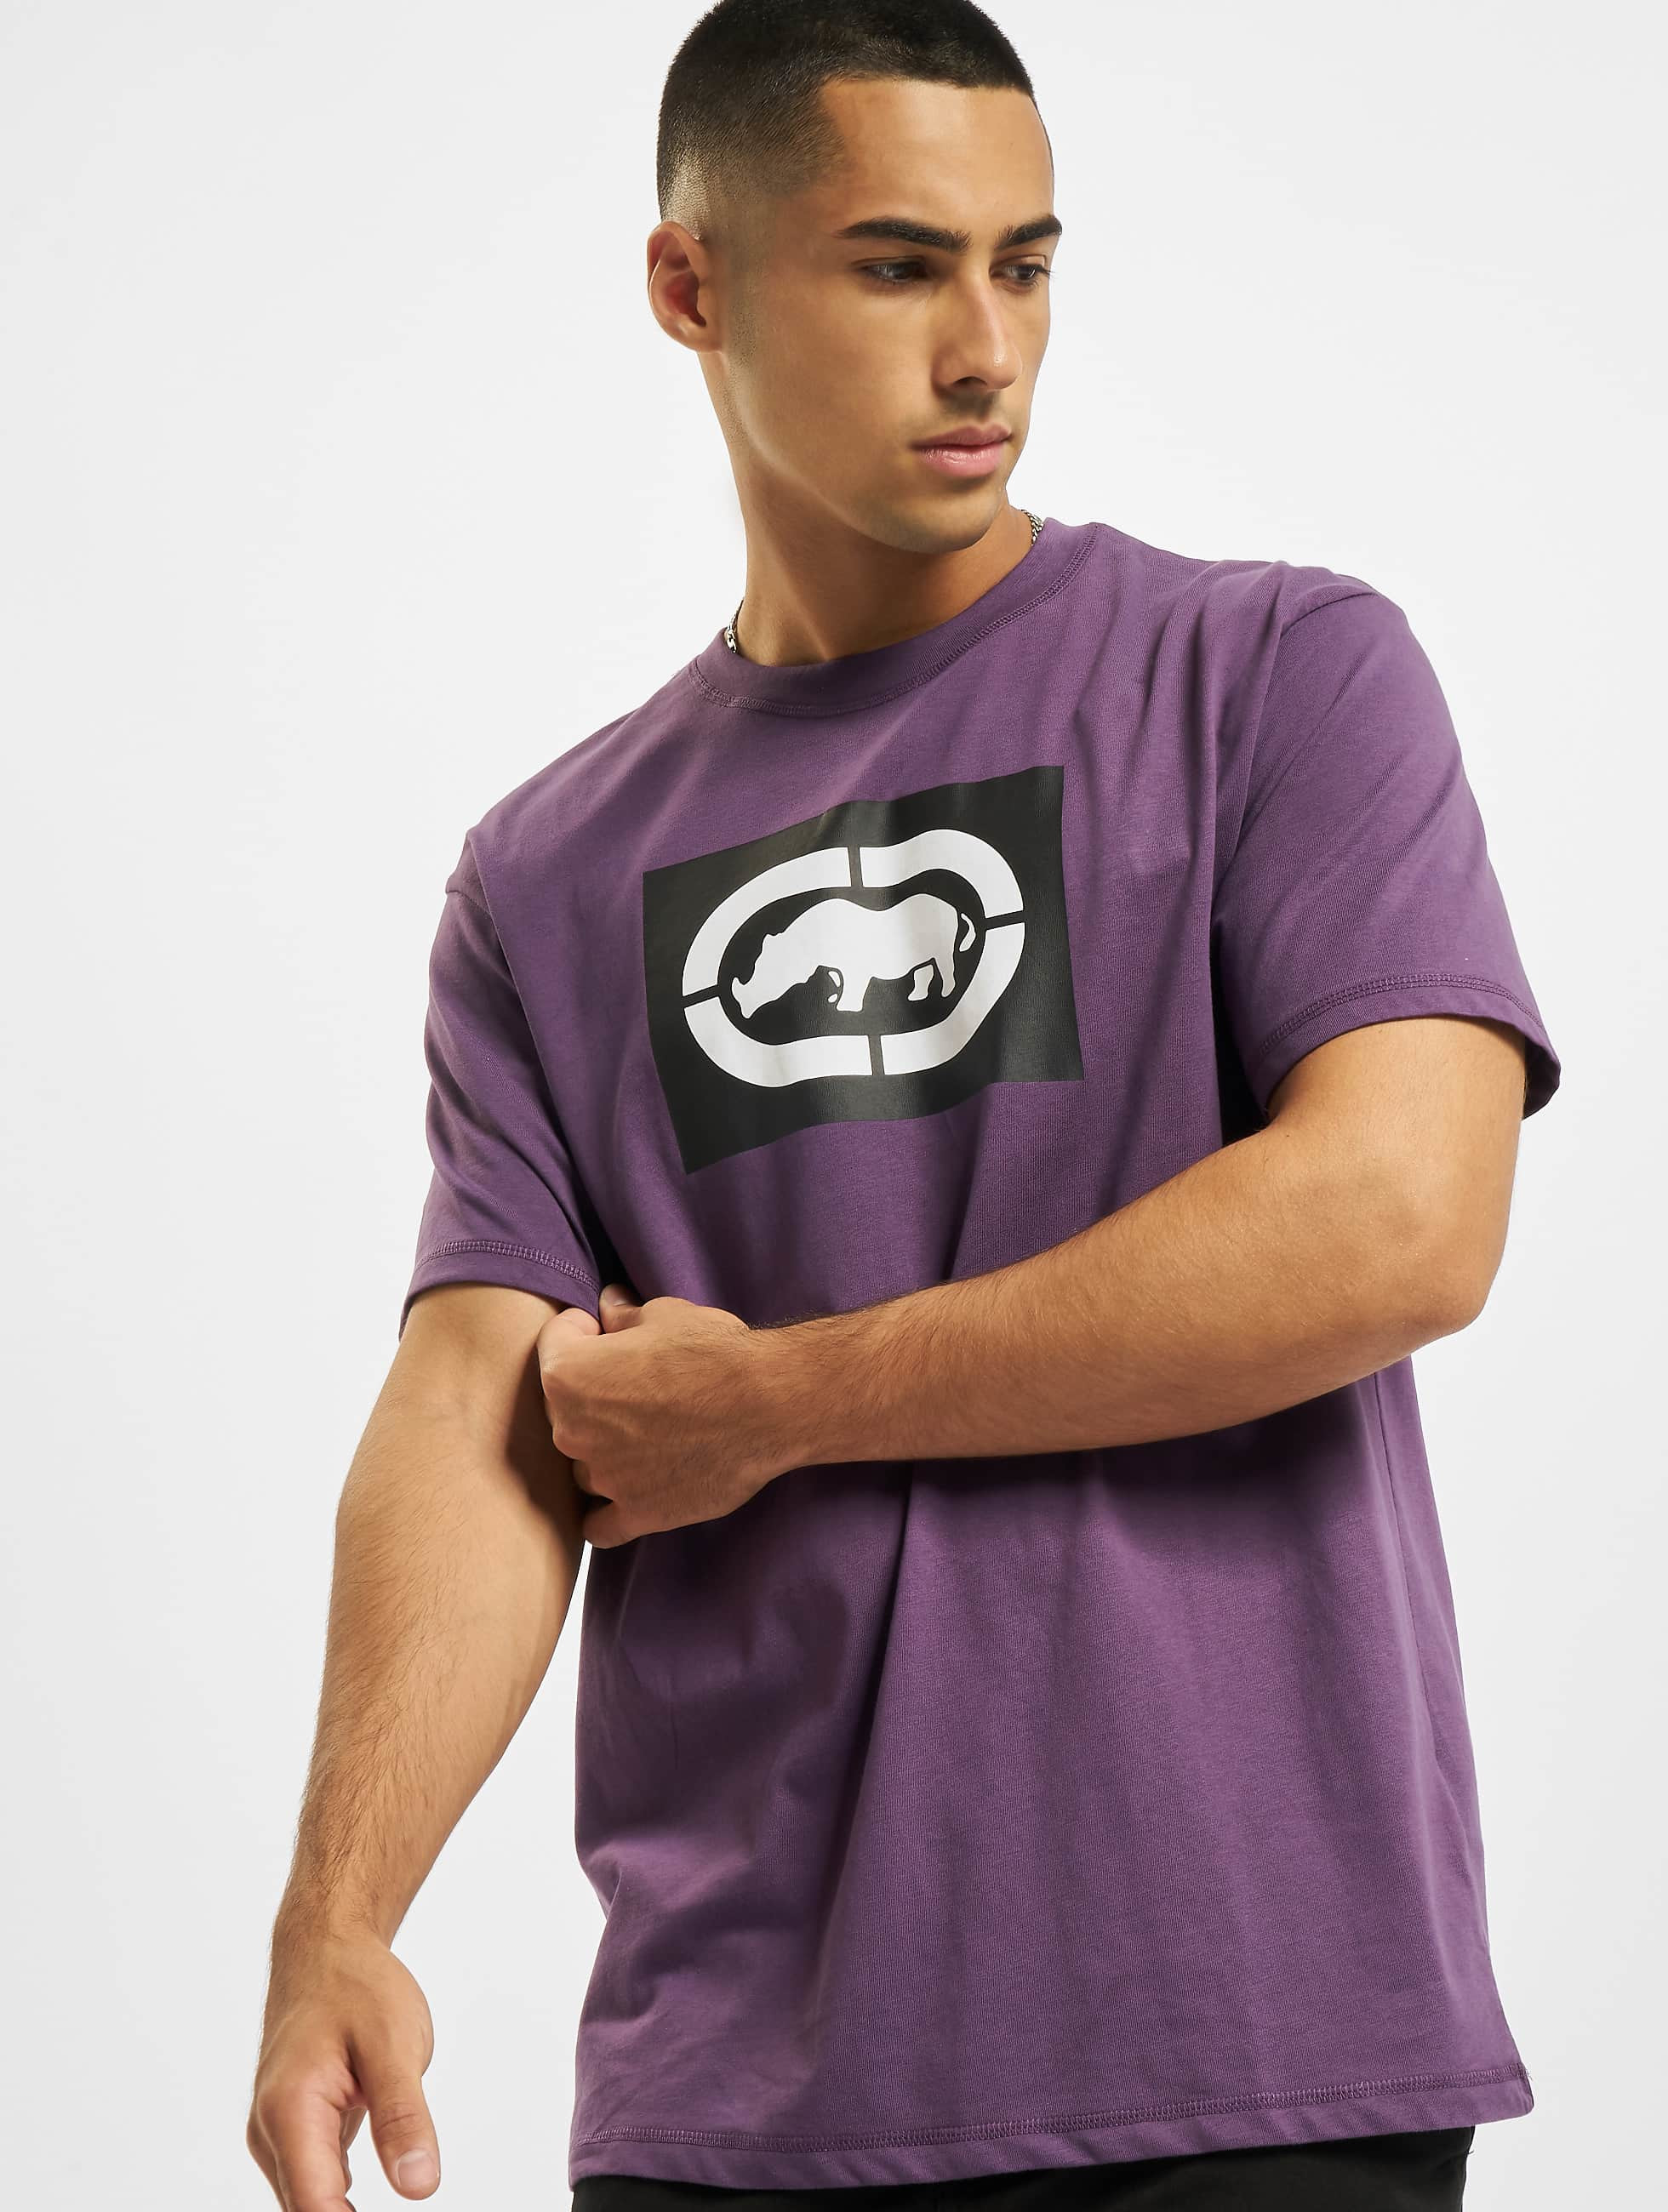 Ecko Unltd. / T-Shirt Base in purple M